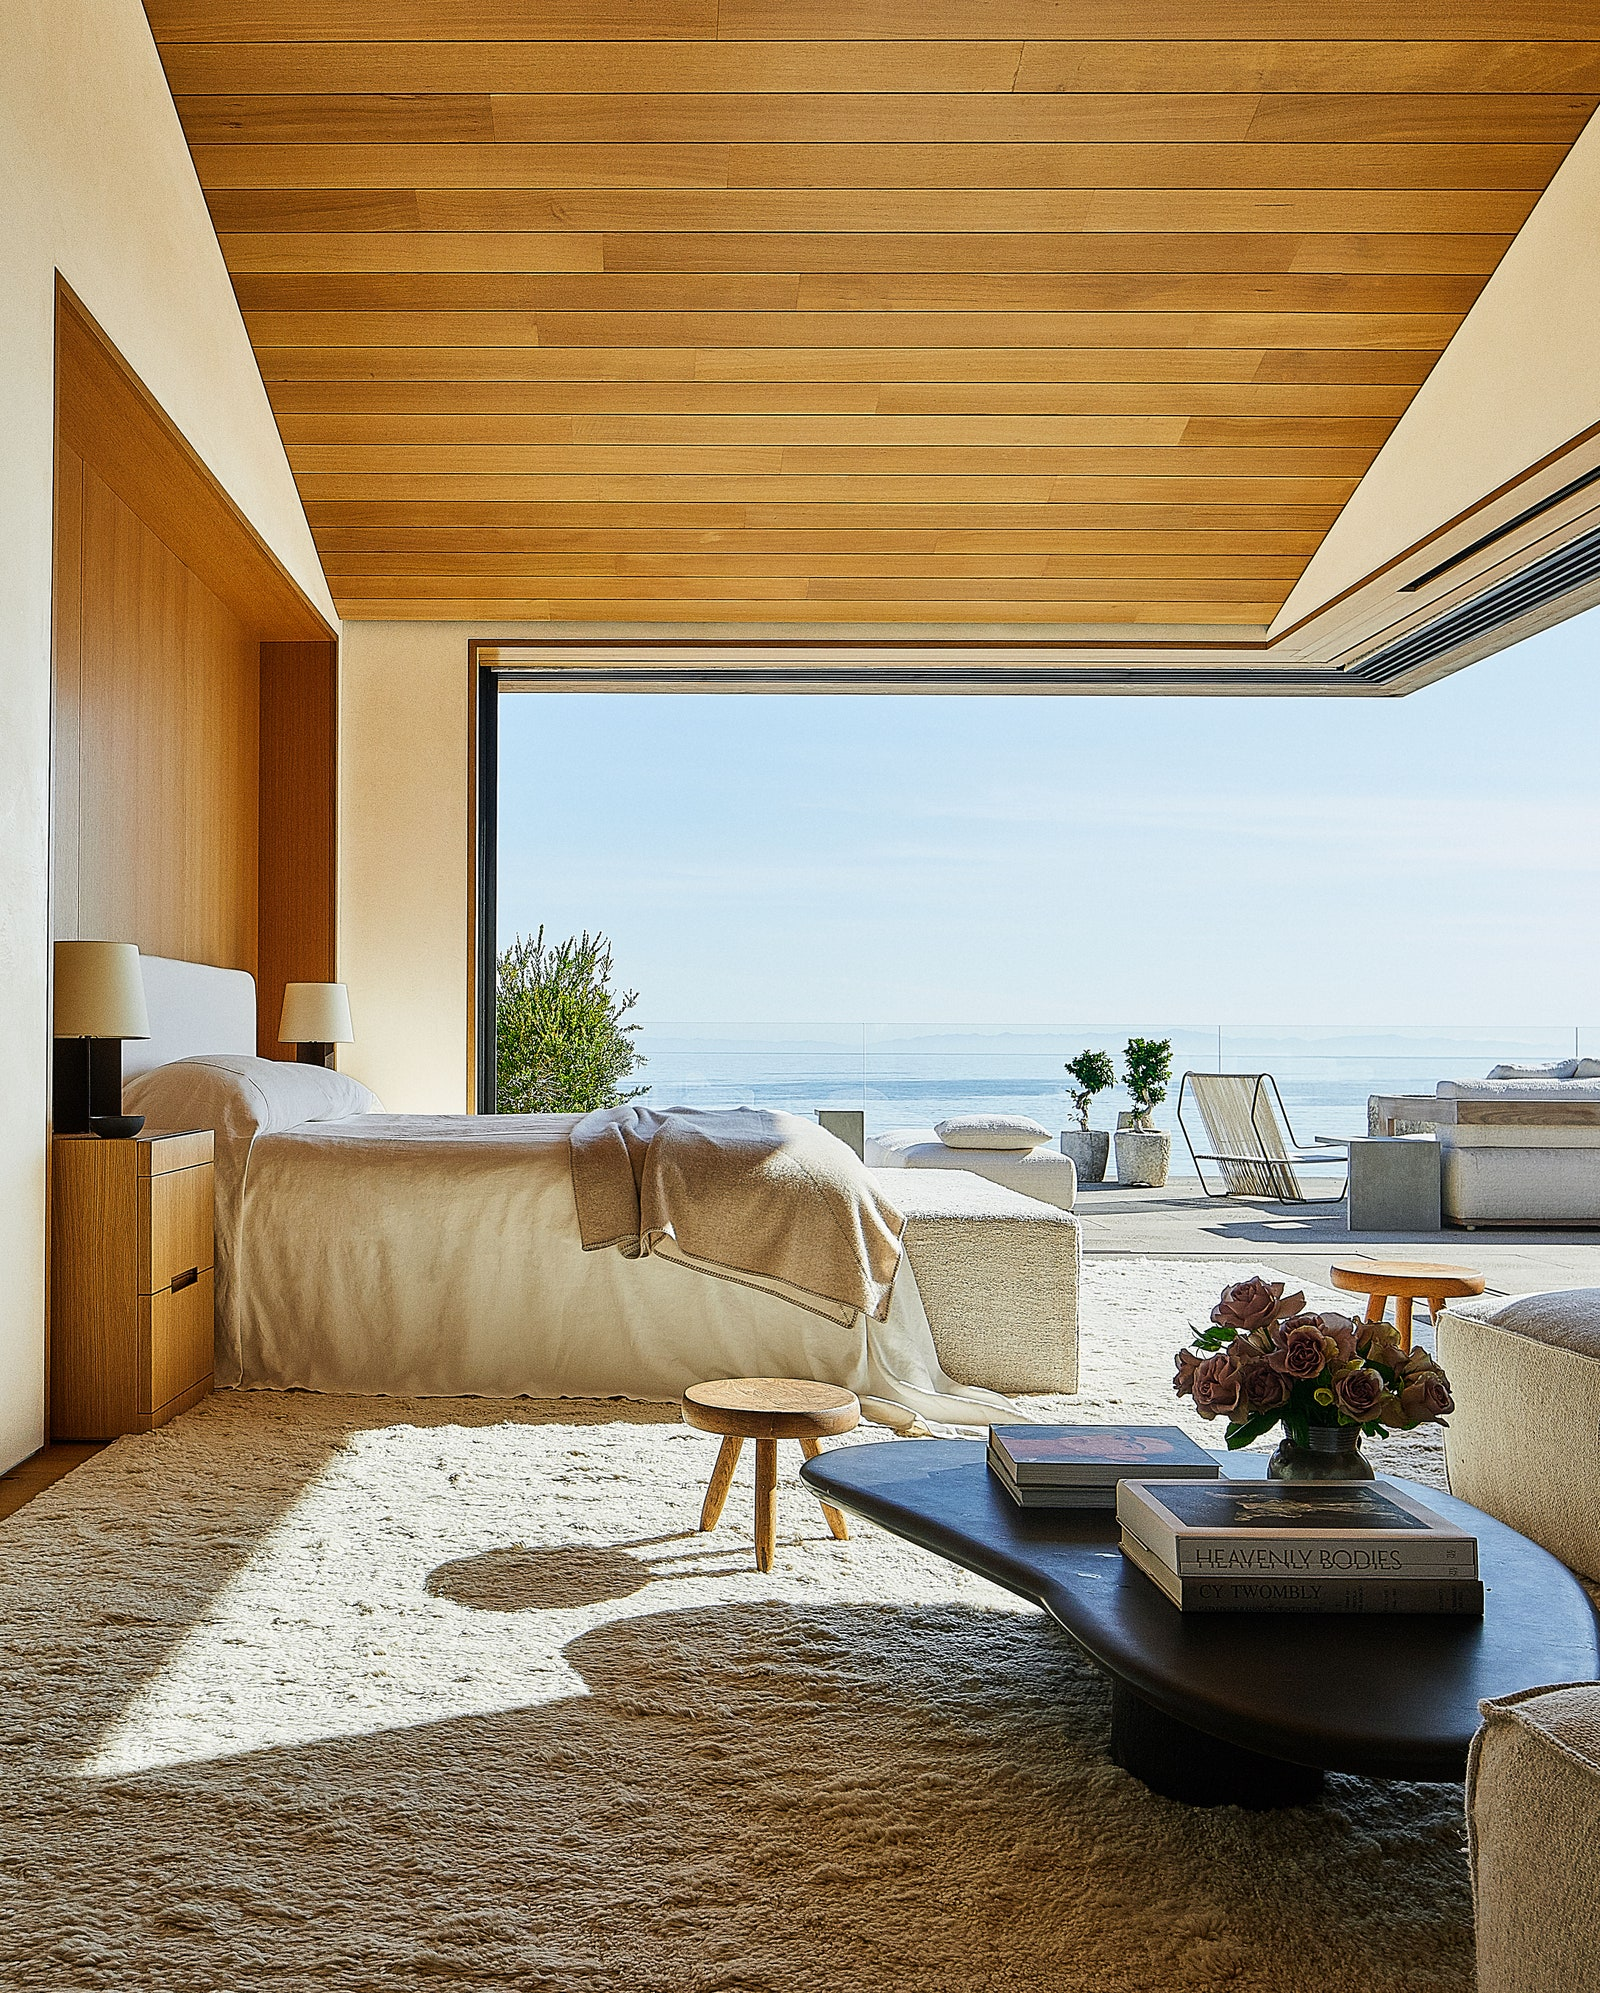 A bedroom that looks out at the ocean